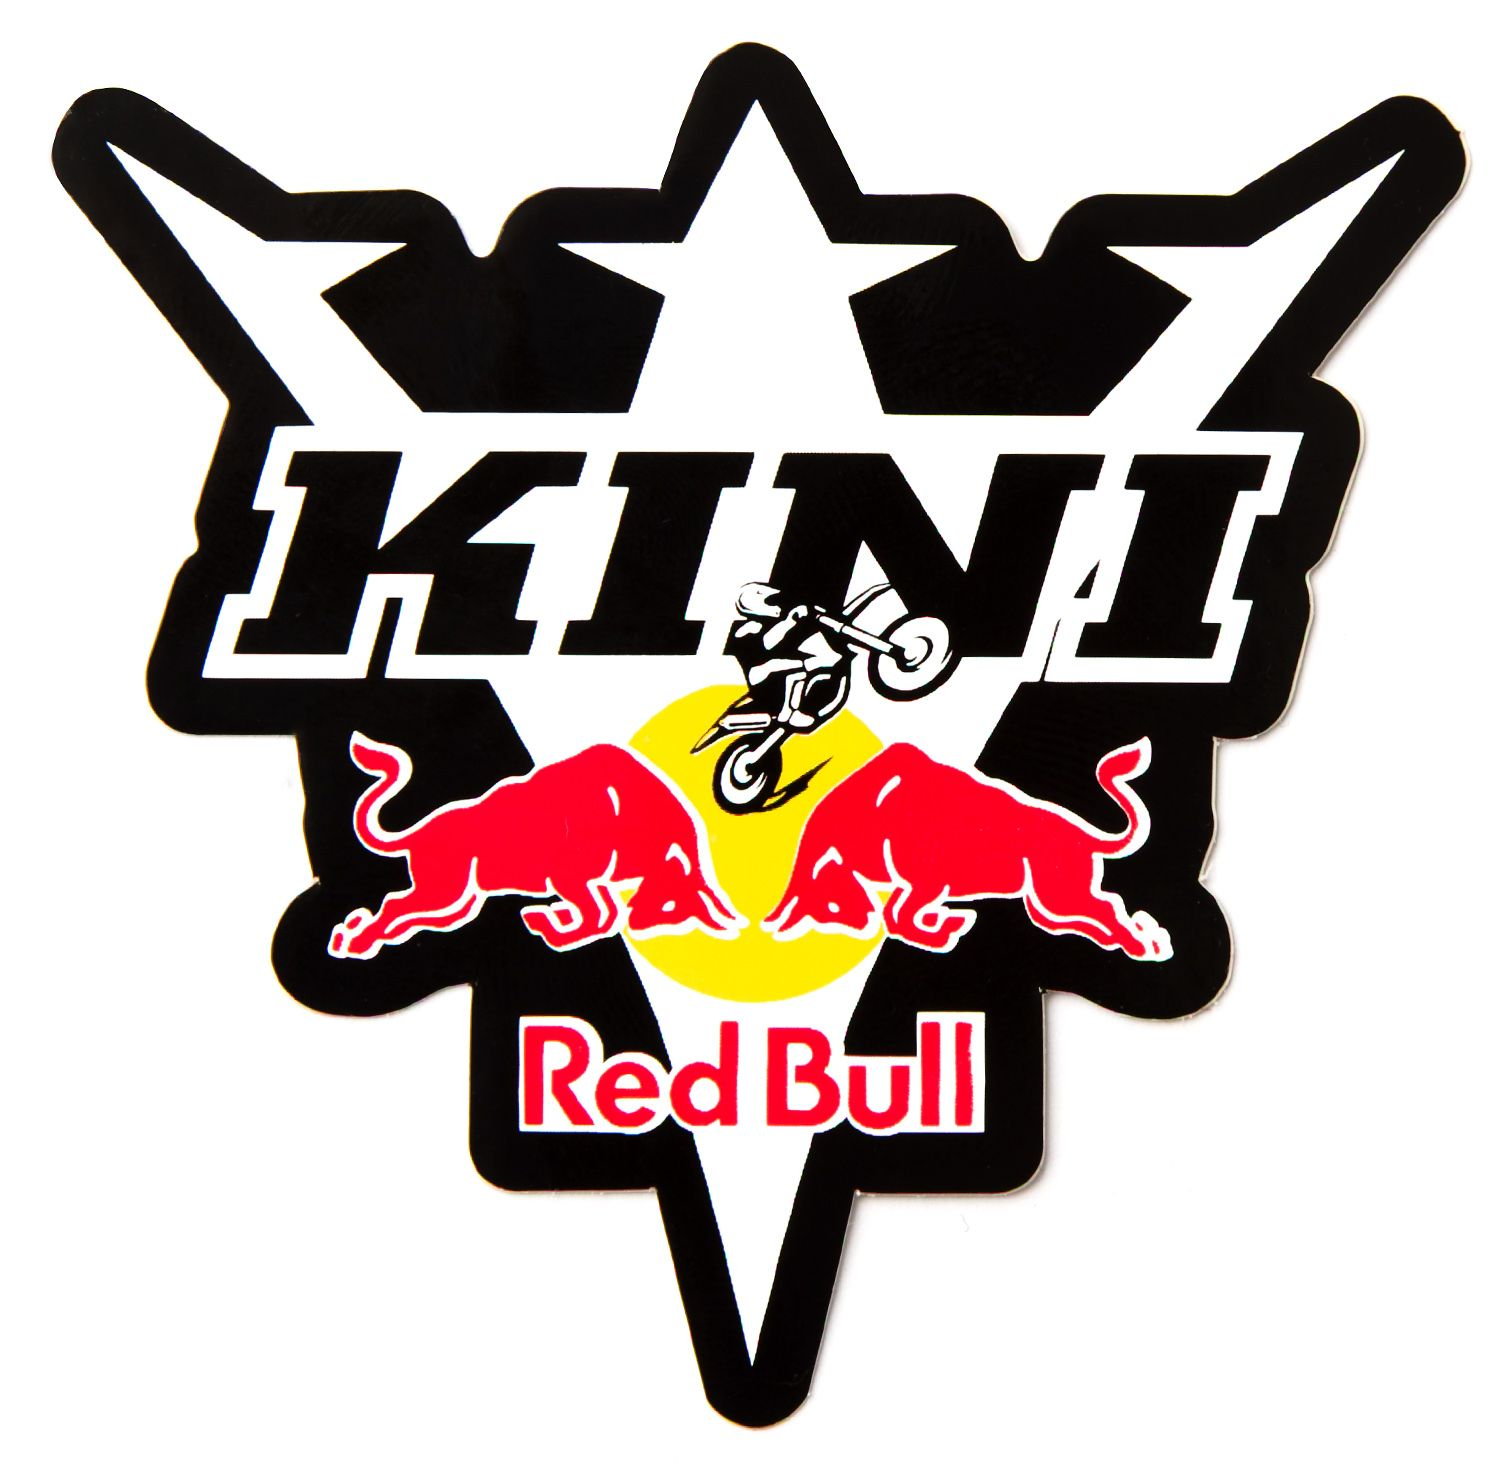 kini_red_bull_sticker1_1324623684.jpg